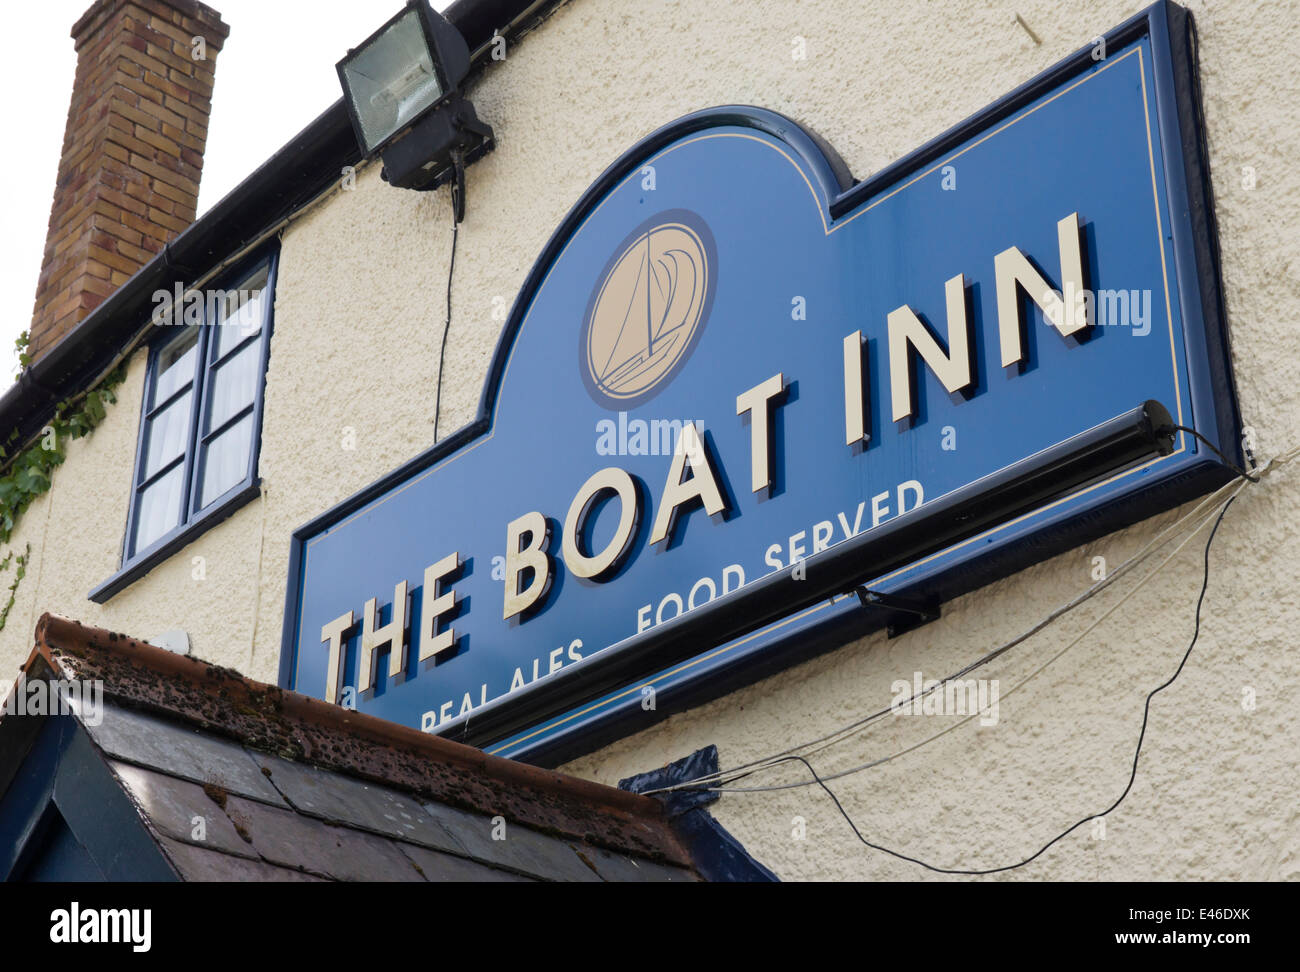 Chepstow in Monmouthshire Wales UK  The Boat Inn, the Back, Chepstow. - Stock Image